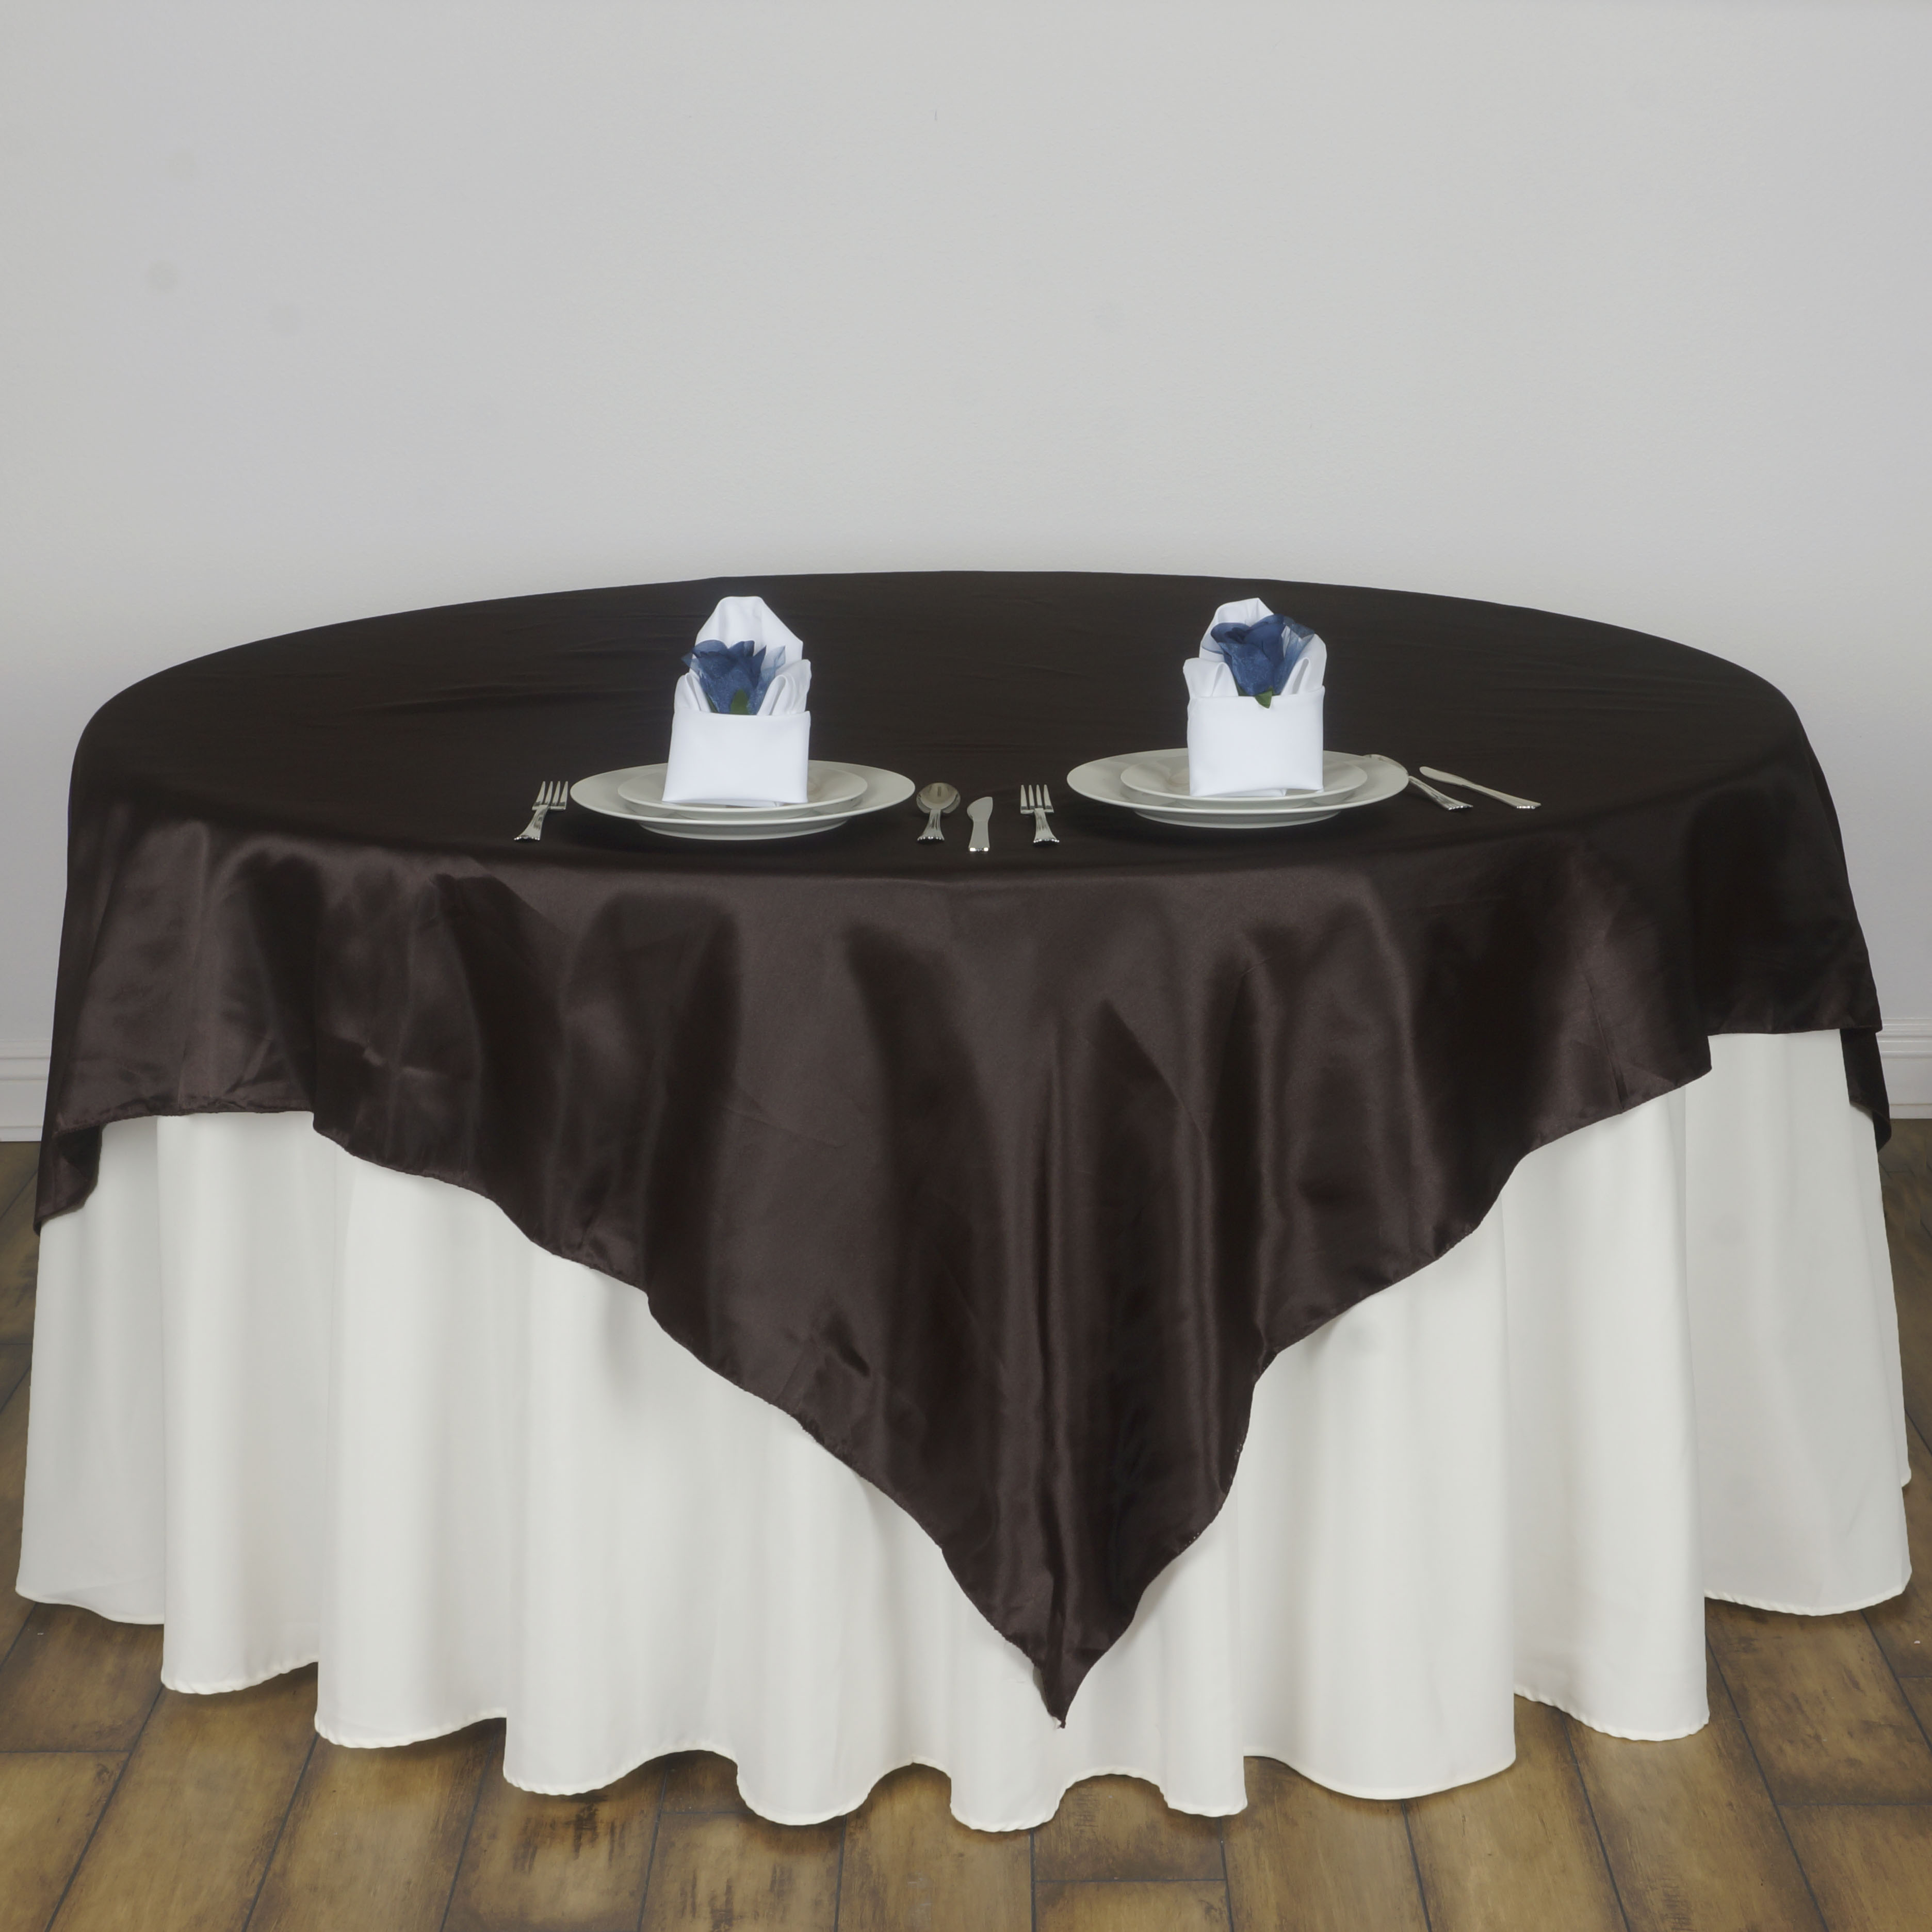 """Linens For Weddings: 15 Pcs 72x72"""" Square SATIN Table Overlays Wedding Linens"""